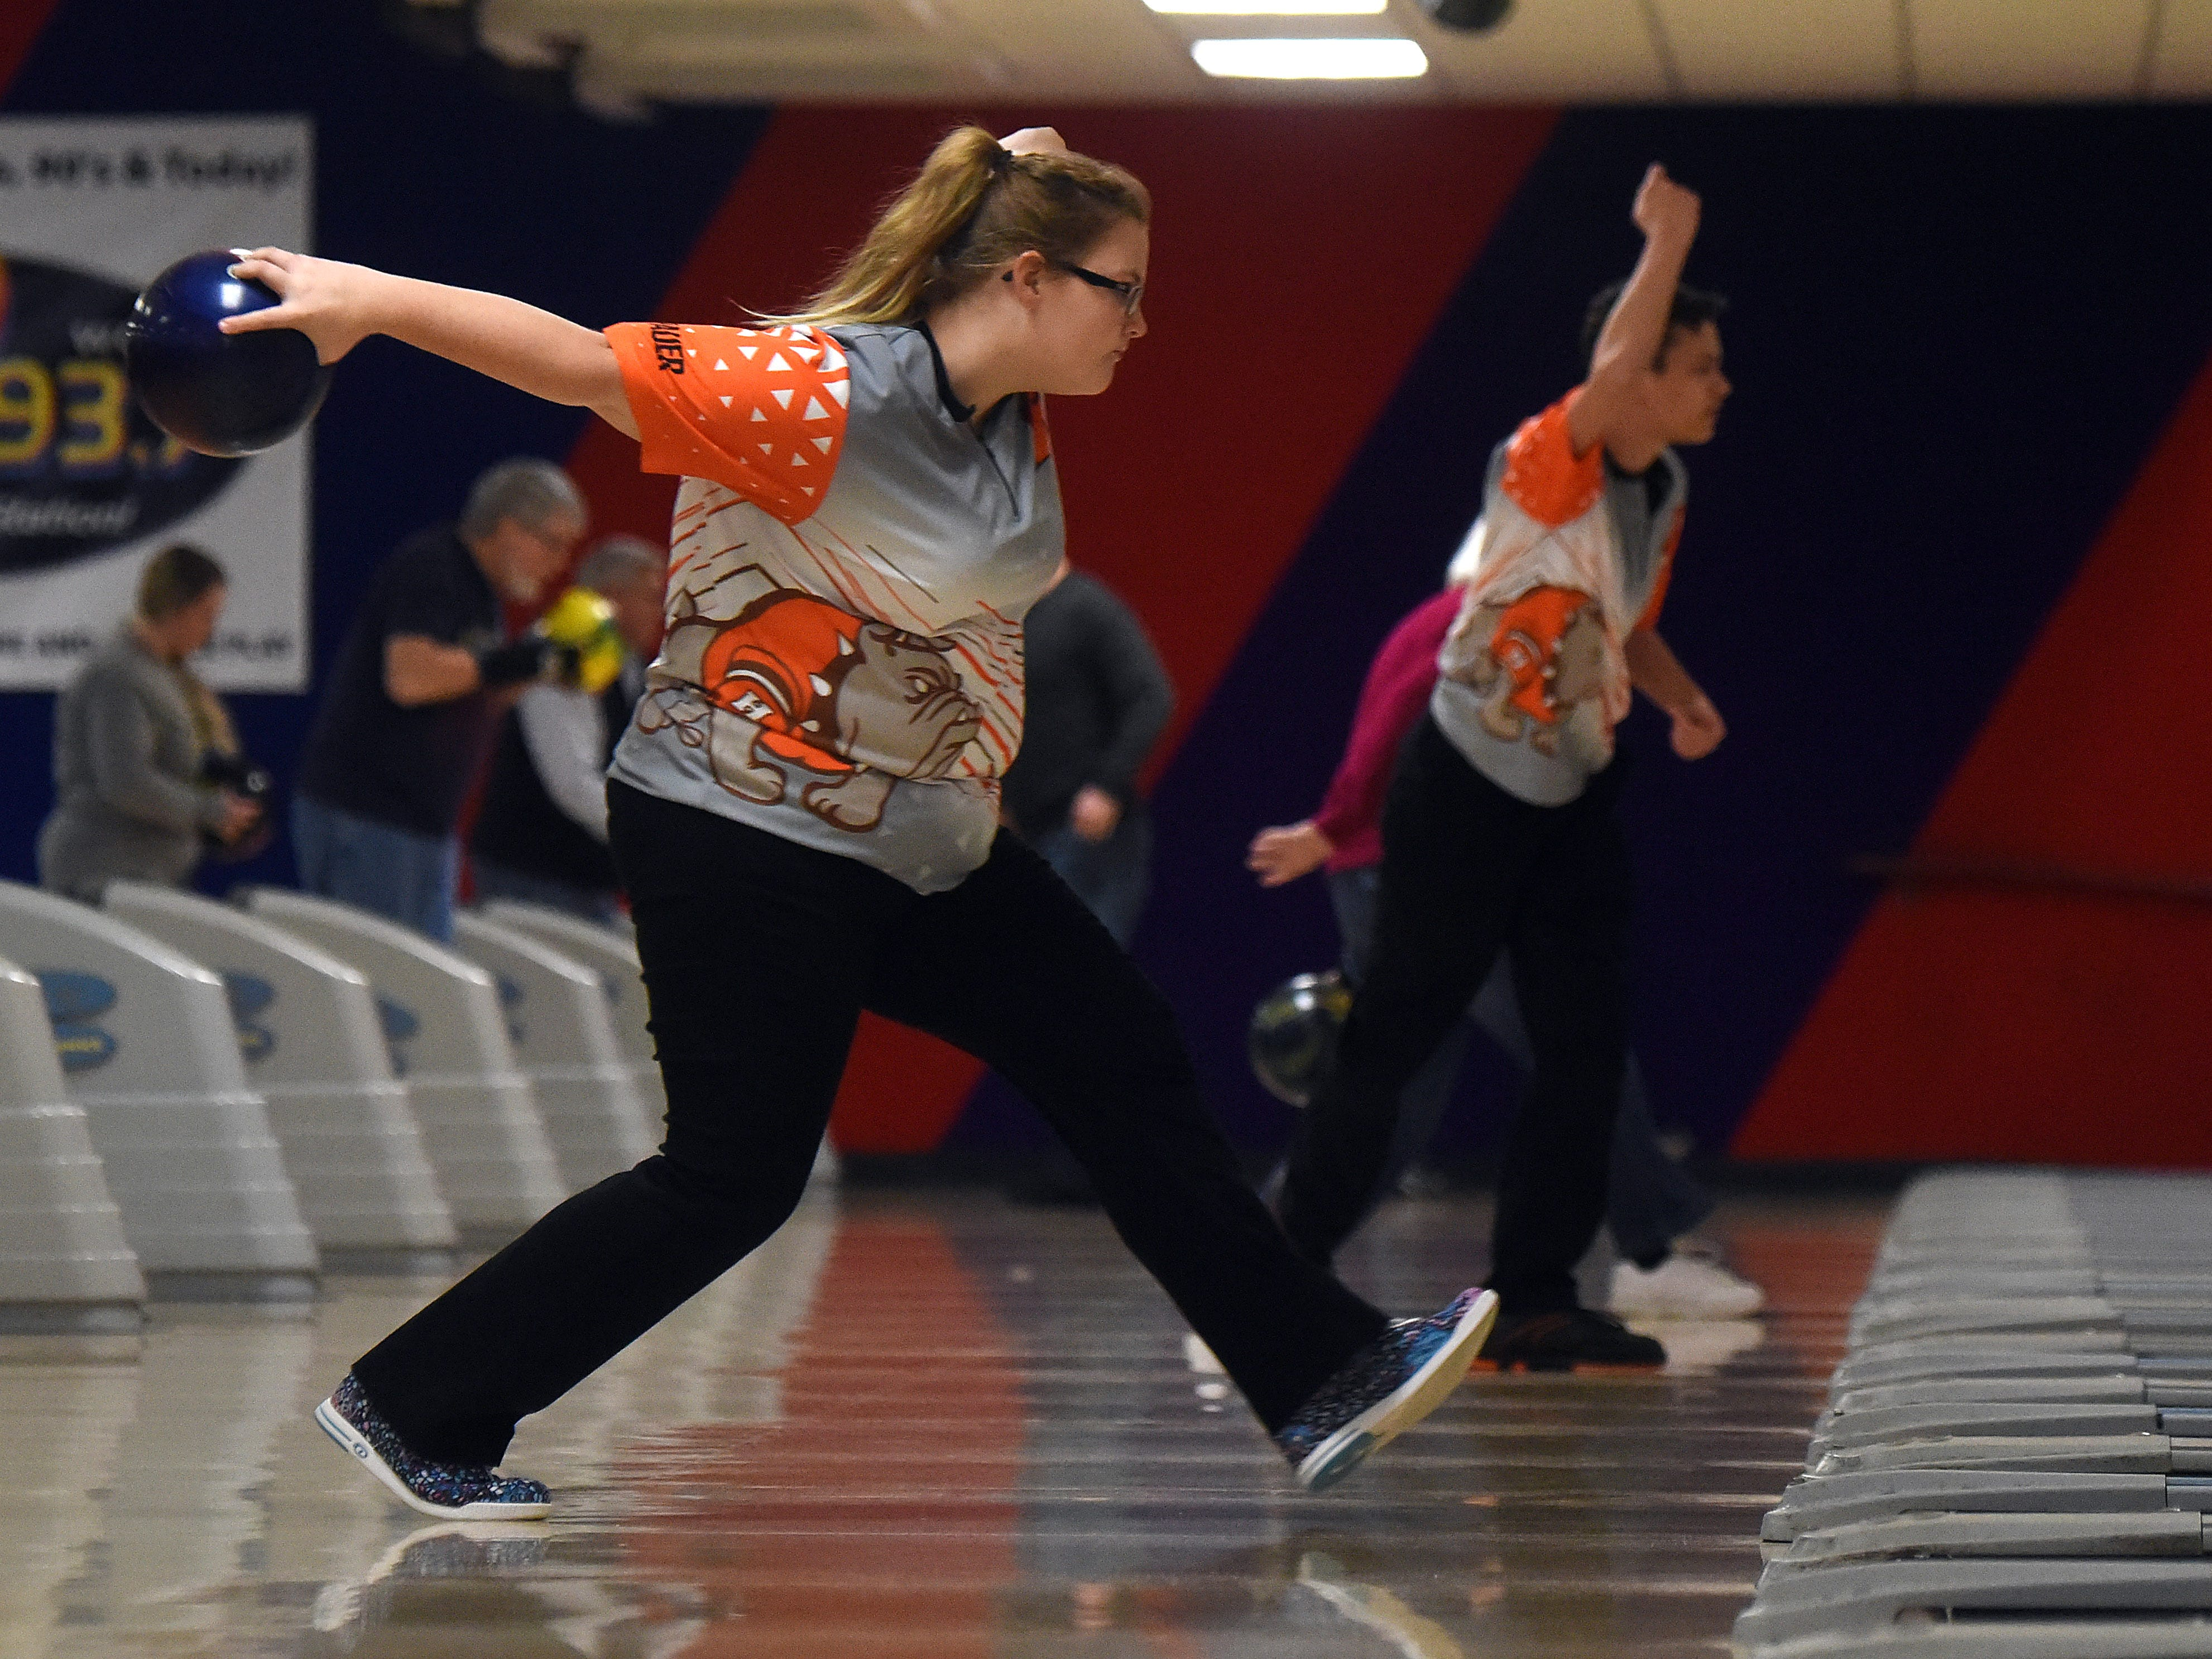 Heath sophomore Kelsey Wilson bowls with the Bulldogs' bowling team against Granville in an LCL match on Thursday, Jan. 17, 2019, at Park Lanes in Heath.